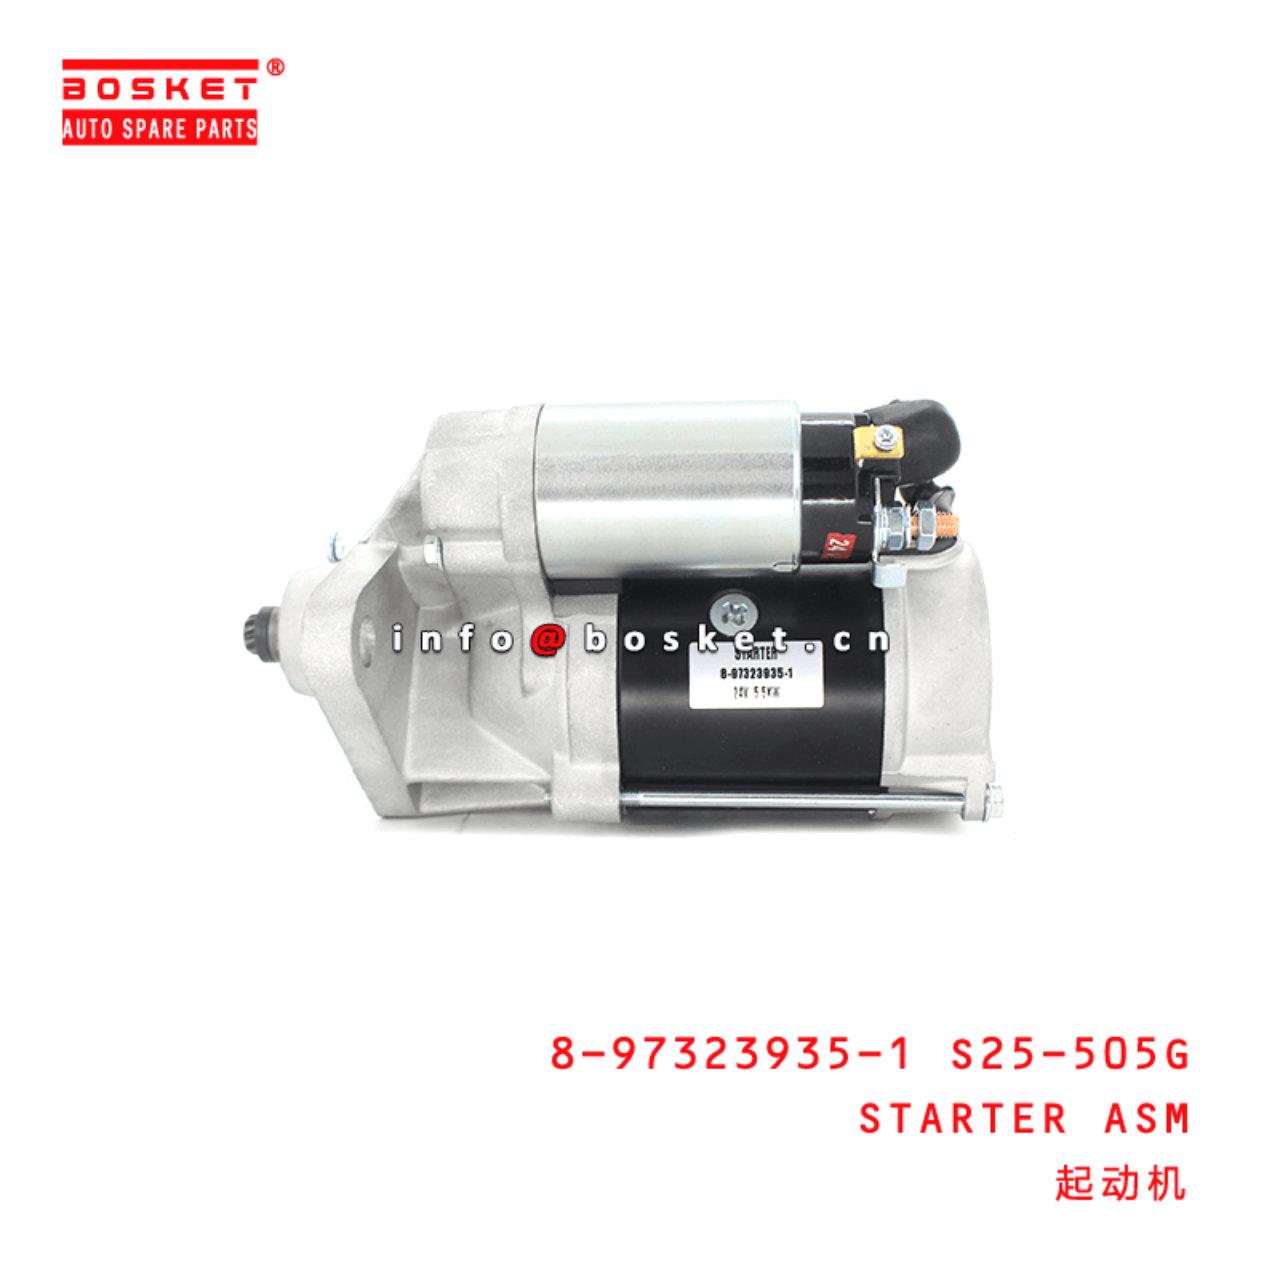 8-97323935-1 Starter Assembly 8973239351 Suitable for ISUZU 700P 4HK1